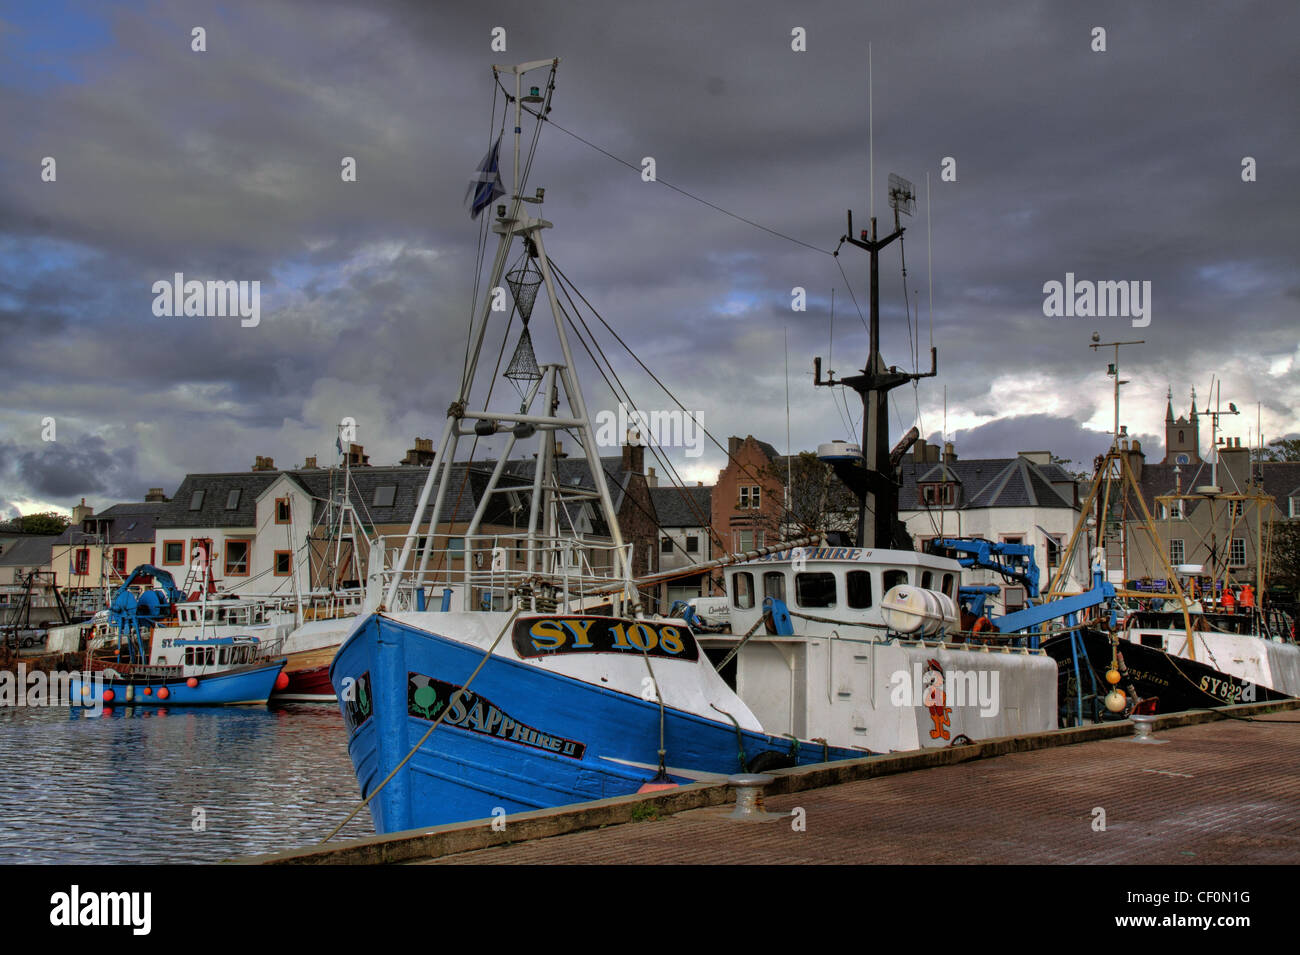 SY108 one of the Stornoway fishing fleet, Outer Hebrides, Scotland, UK - Stock Image